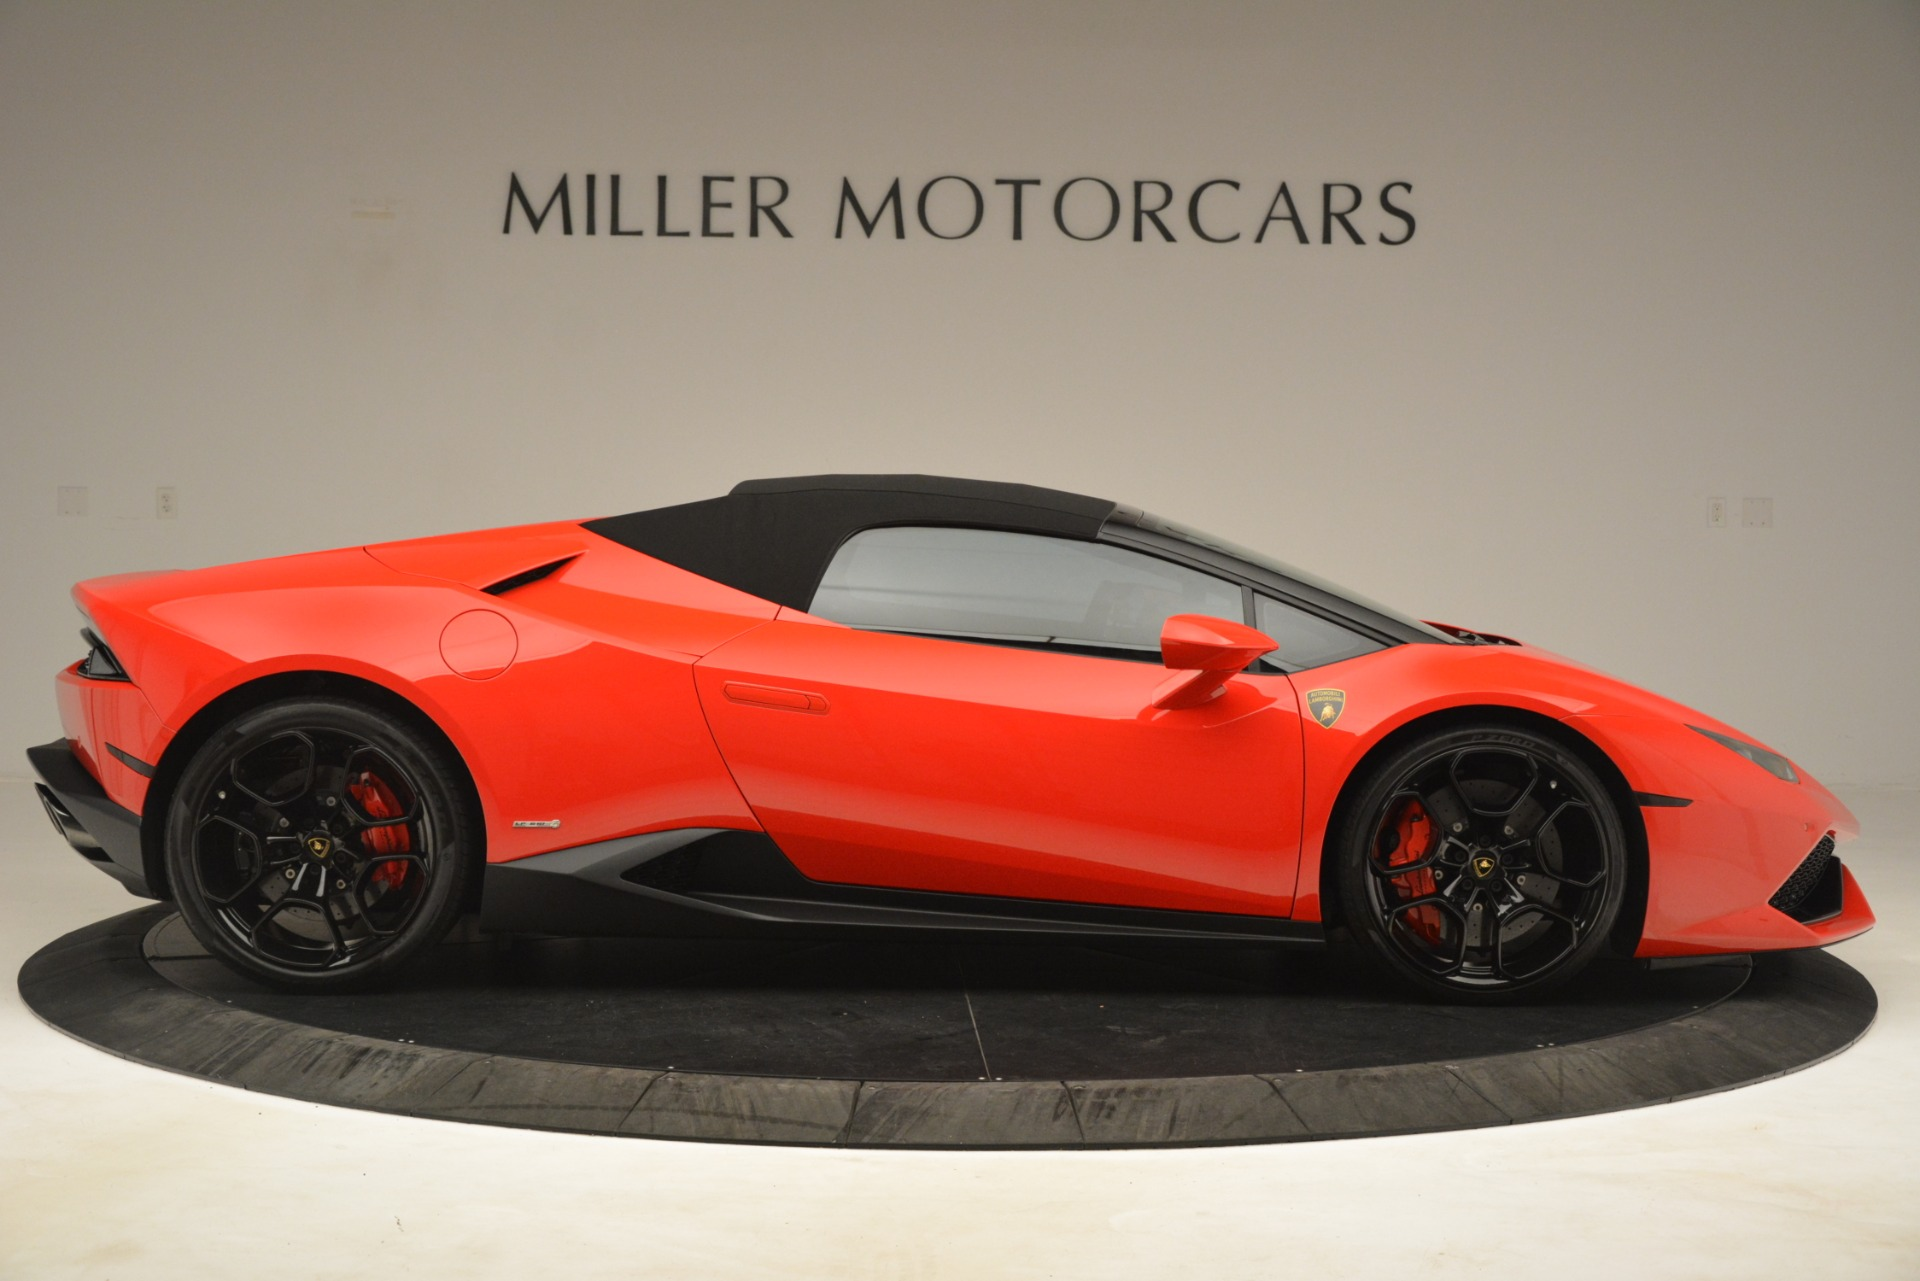 Used 2017 Lamborghini Huracan LP 610-4 Spyder For Sale In Greenwich, CT. Alfa Romeo of Greenwich, 7597 3270_p15